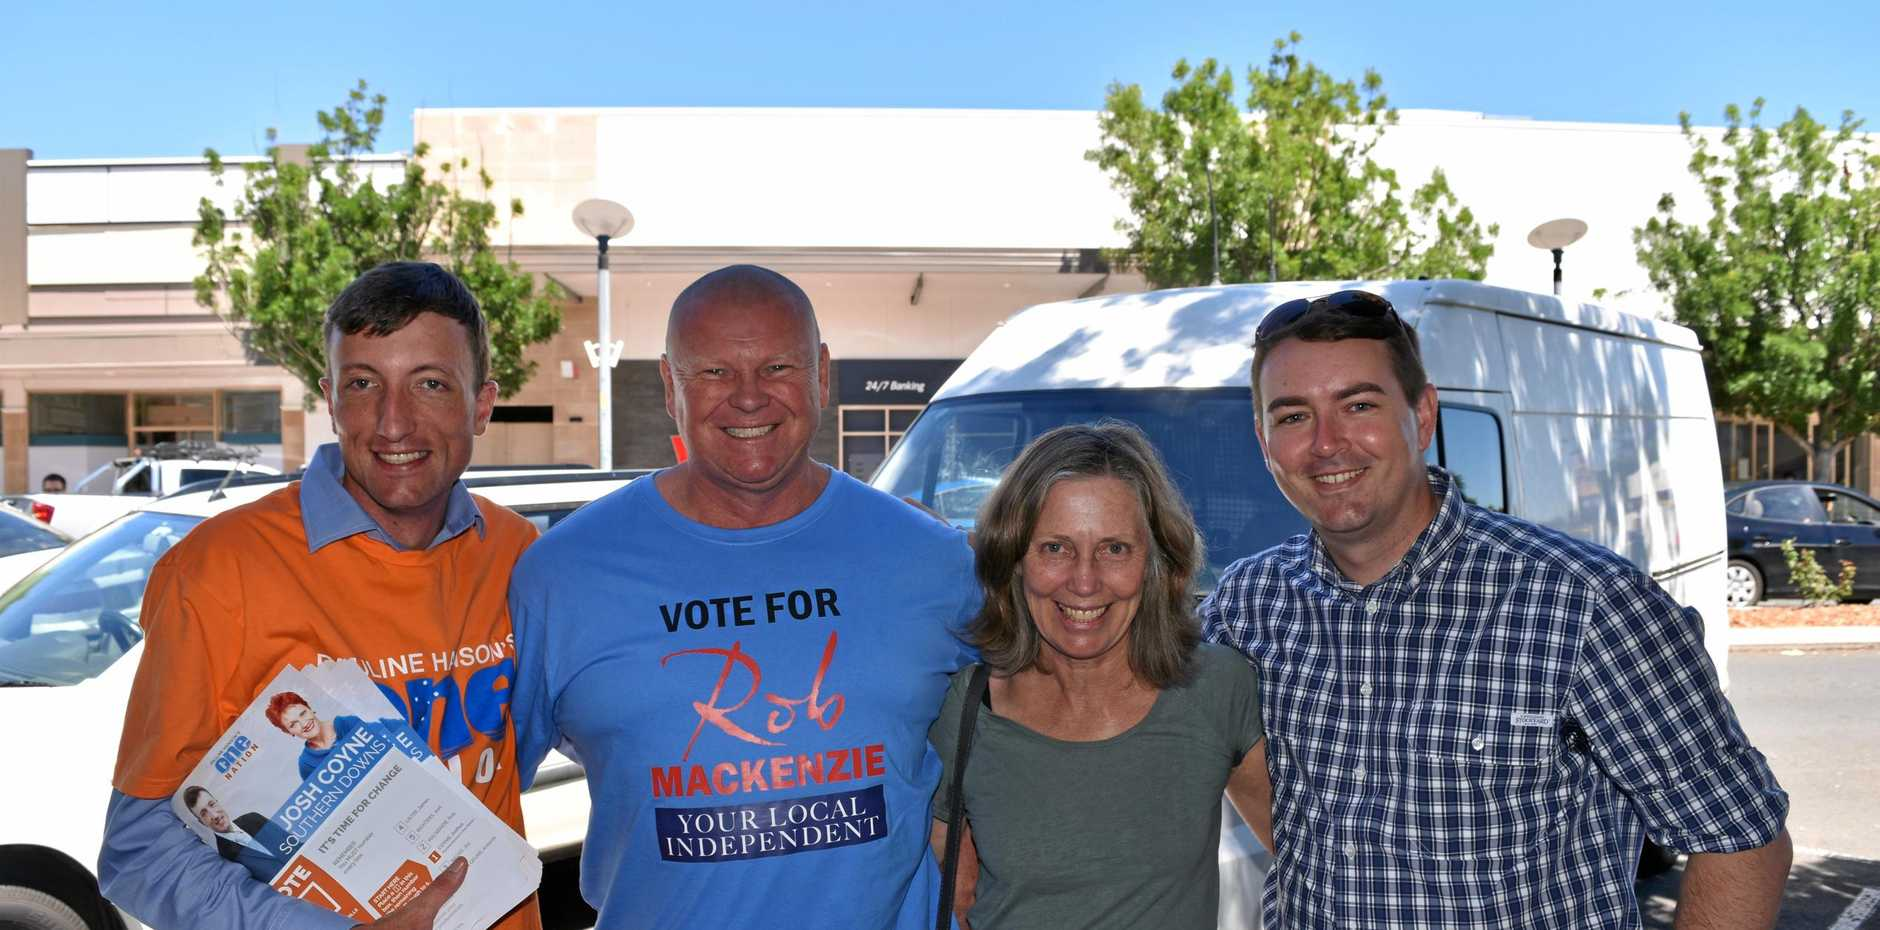 Josh Coyne, Rob Mackenzie, Antonia van Geuns and Joel Richters at the Warwick pre-polling booth this morning.